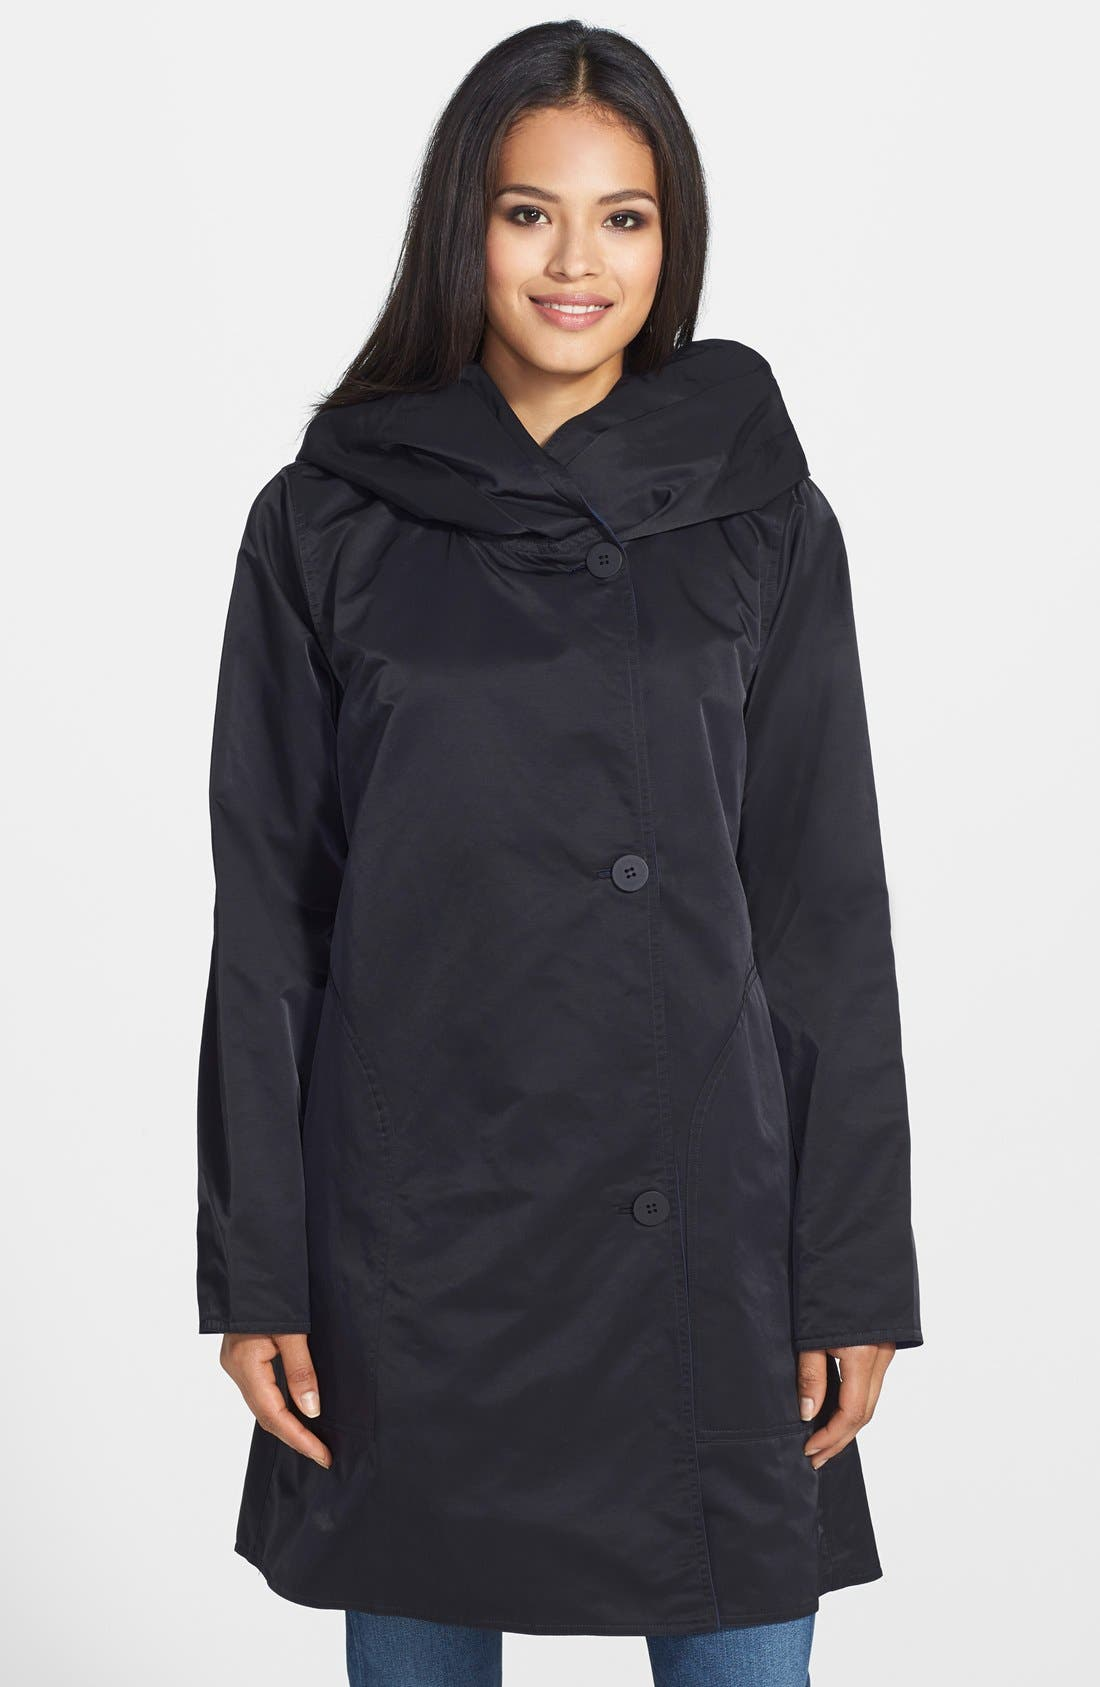 Alternate Image 1 Selected - Eileen Fisher Contrast Lined Reversible Hooded A-Line Coat (Regular & Petite)